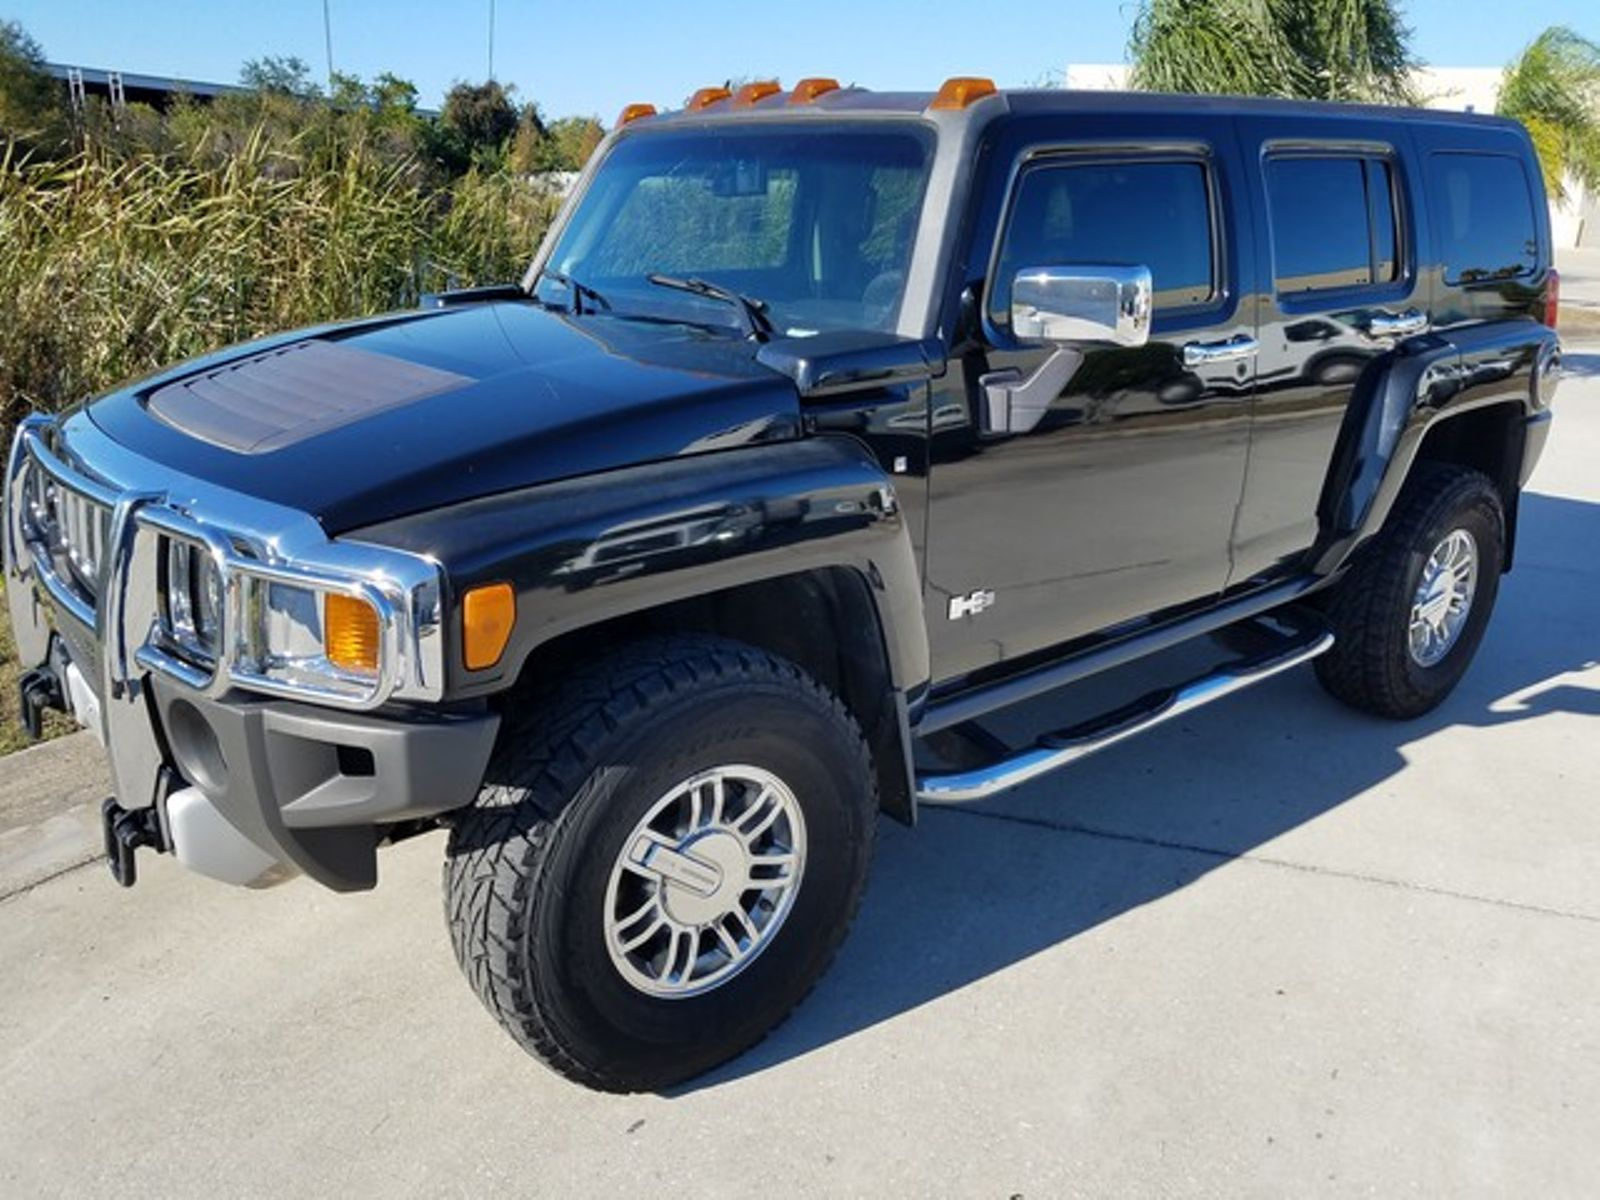 2008 Hummer H3 SUV Alpha city FL Unlimited Autosports